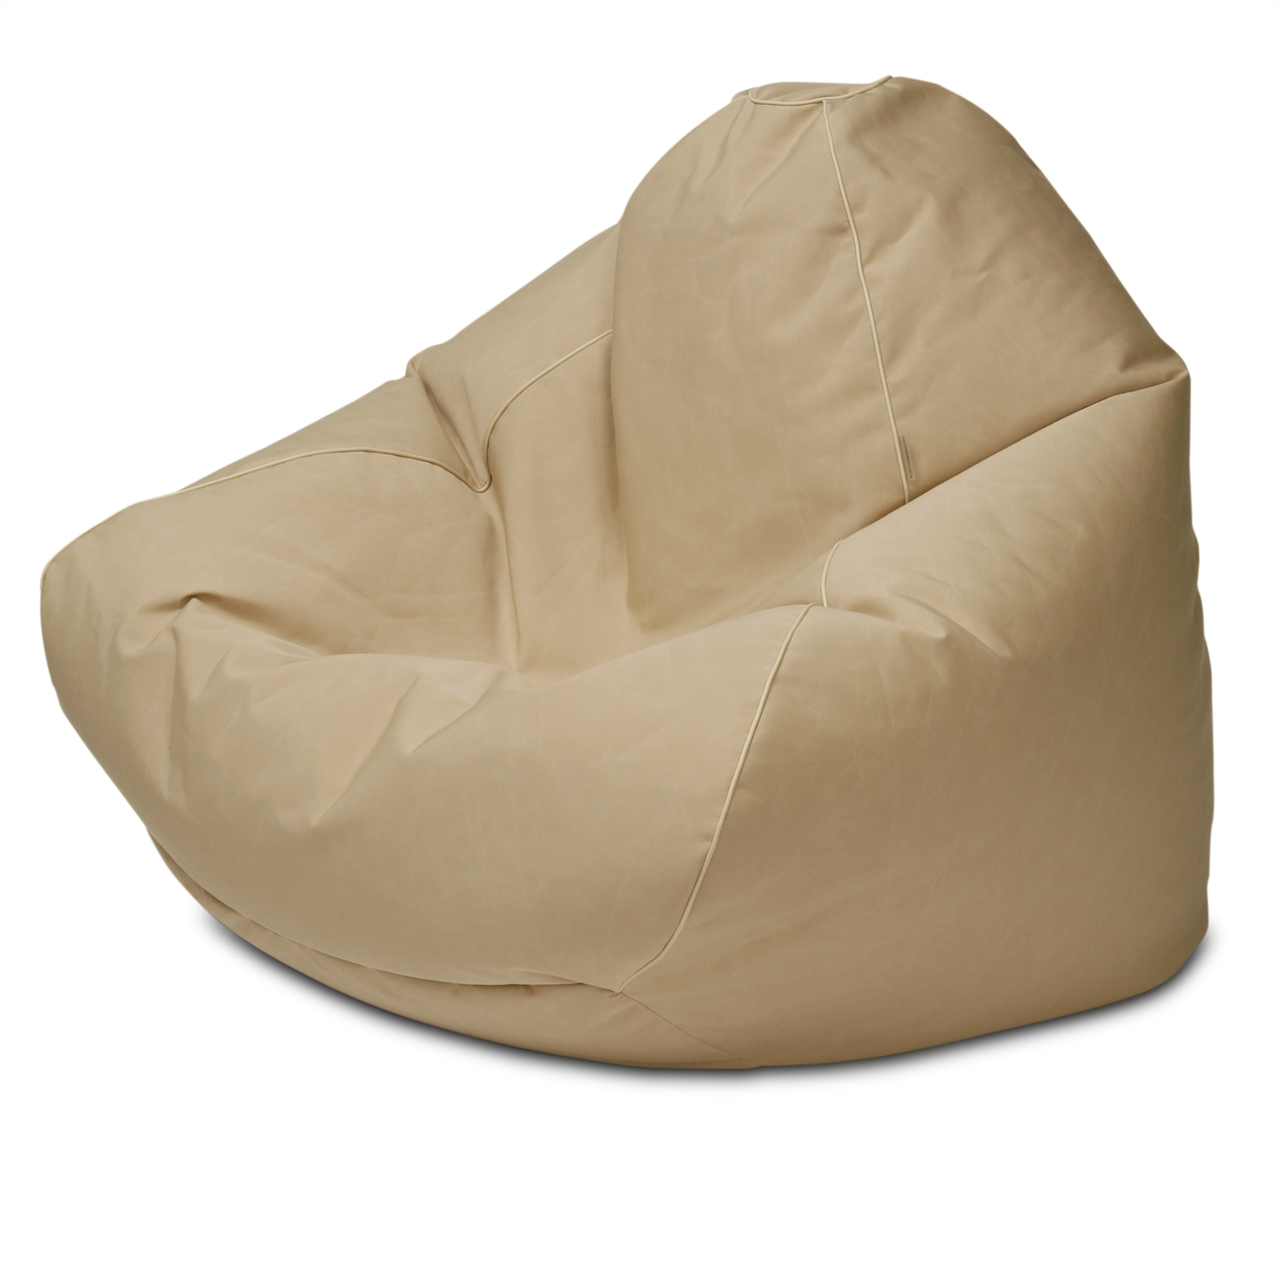 Sunbrella Outdoor Queen Size Bean Bag in linen